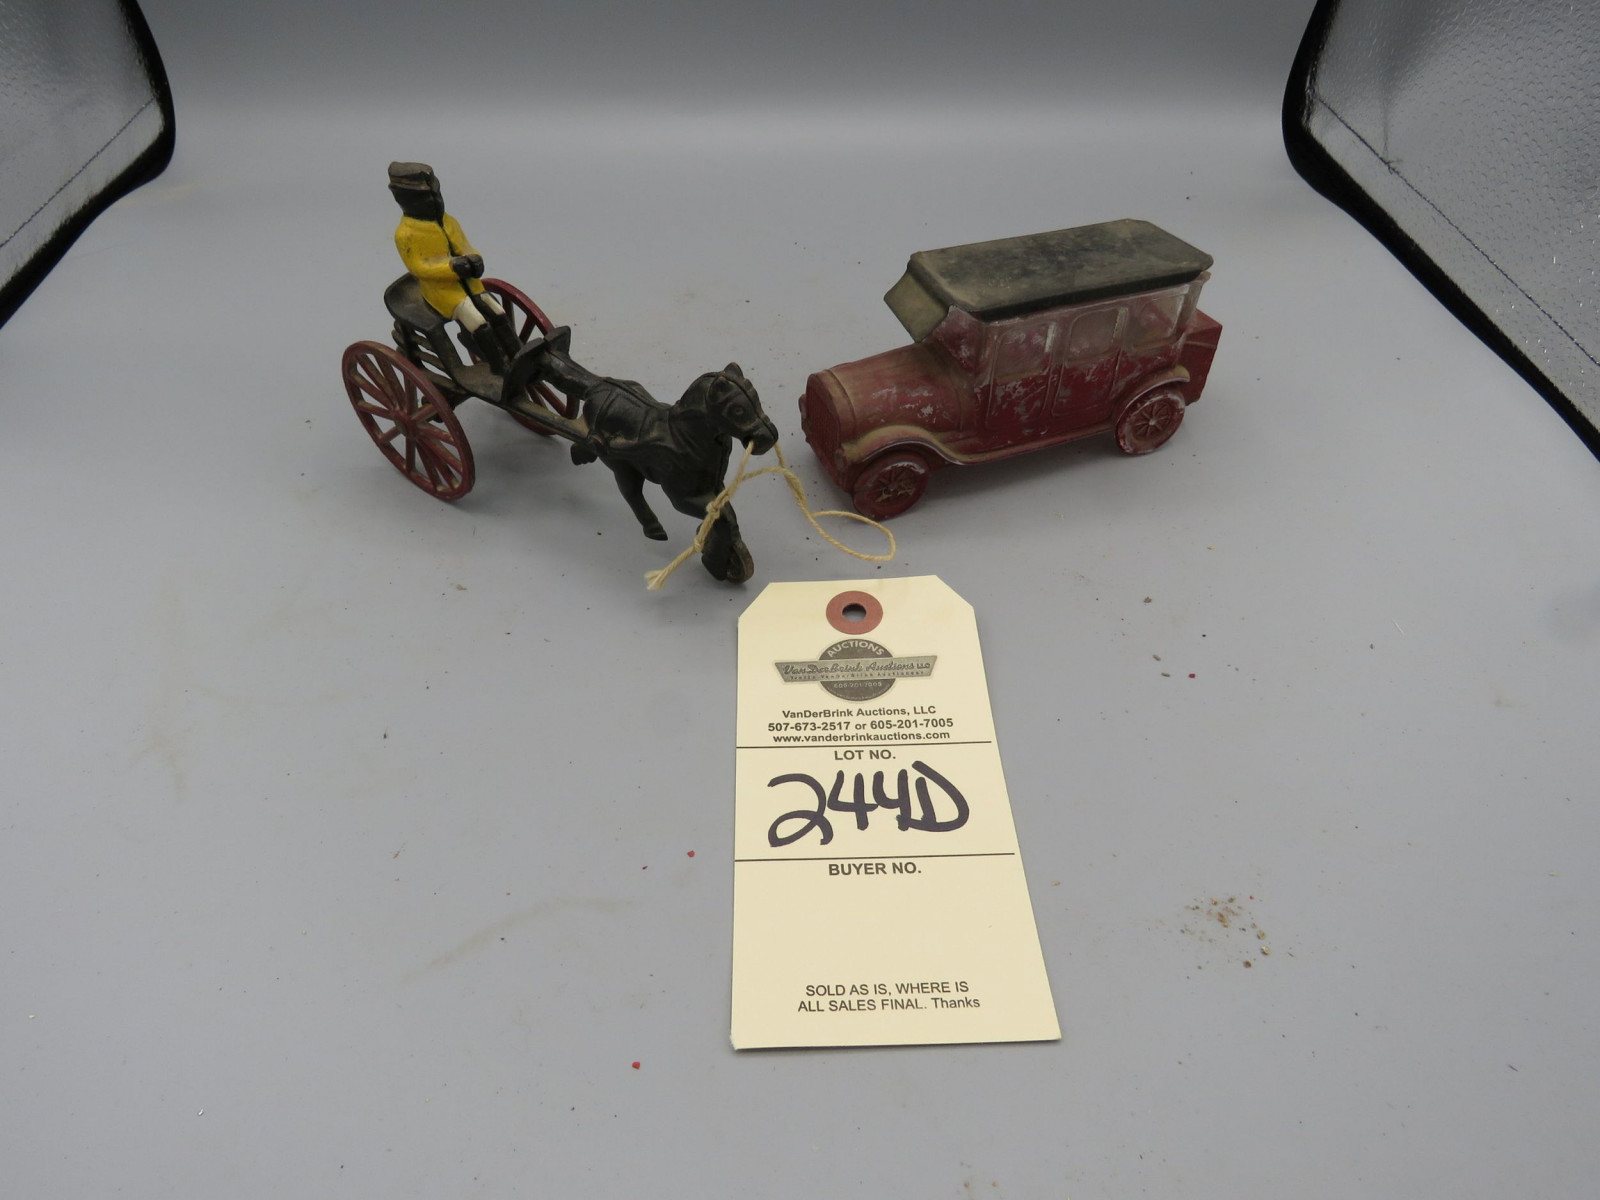 Avon Decanter and Vintage Horse drawn Toy - Image 1